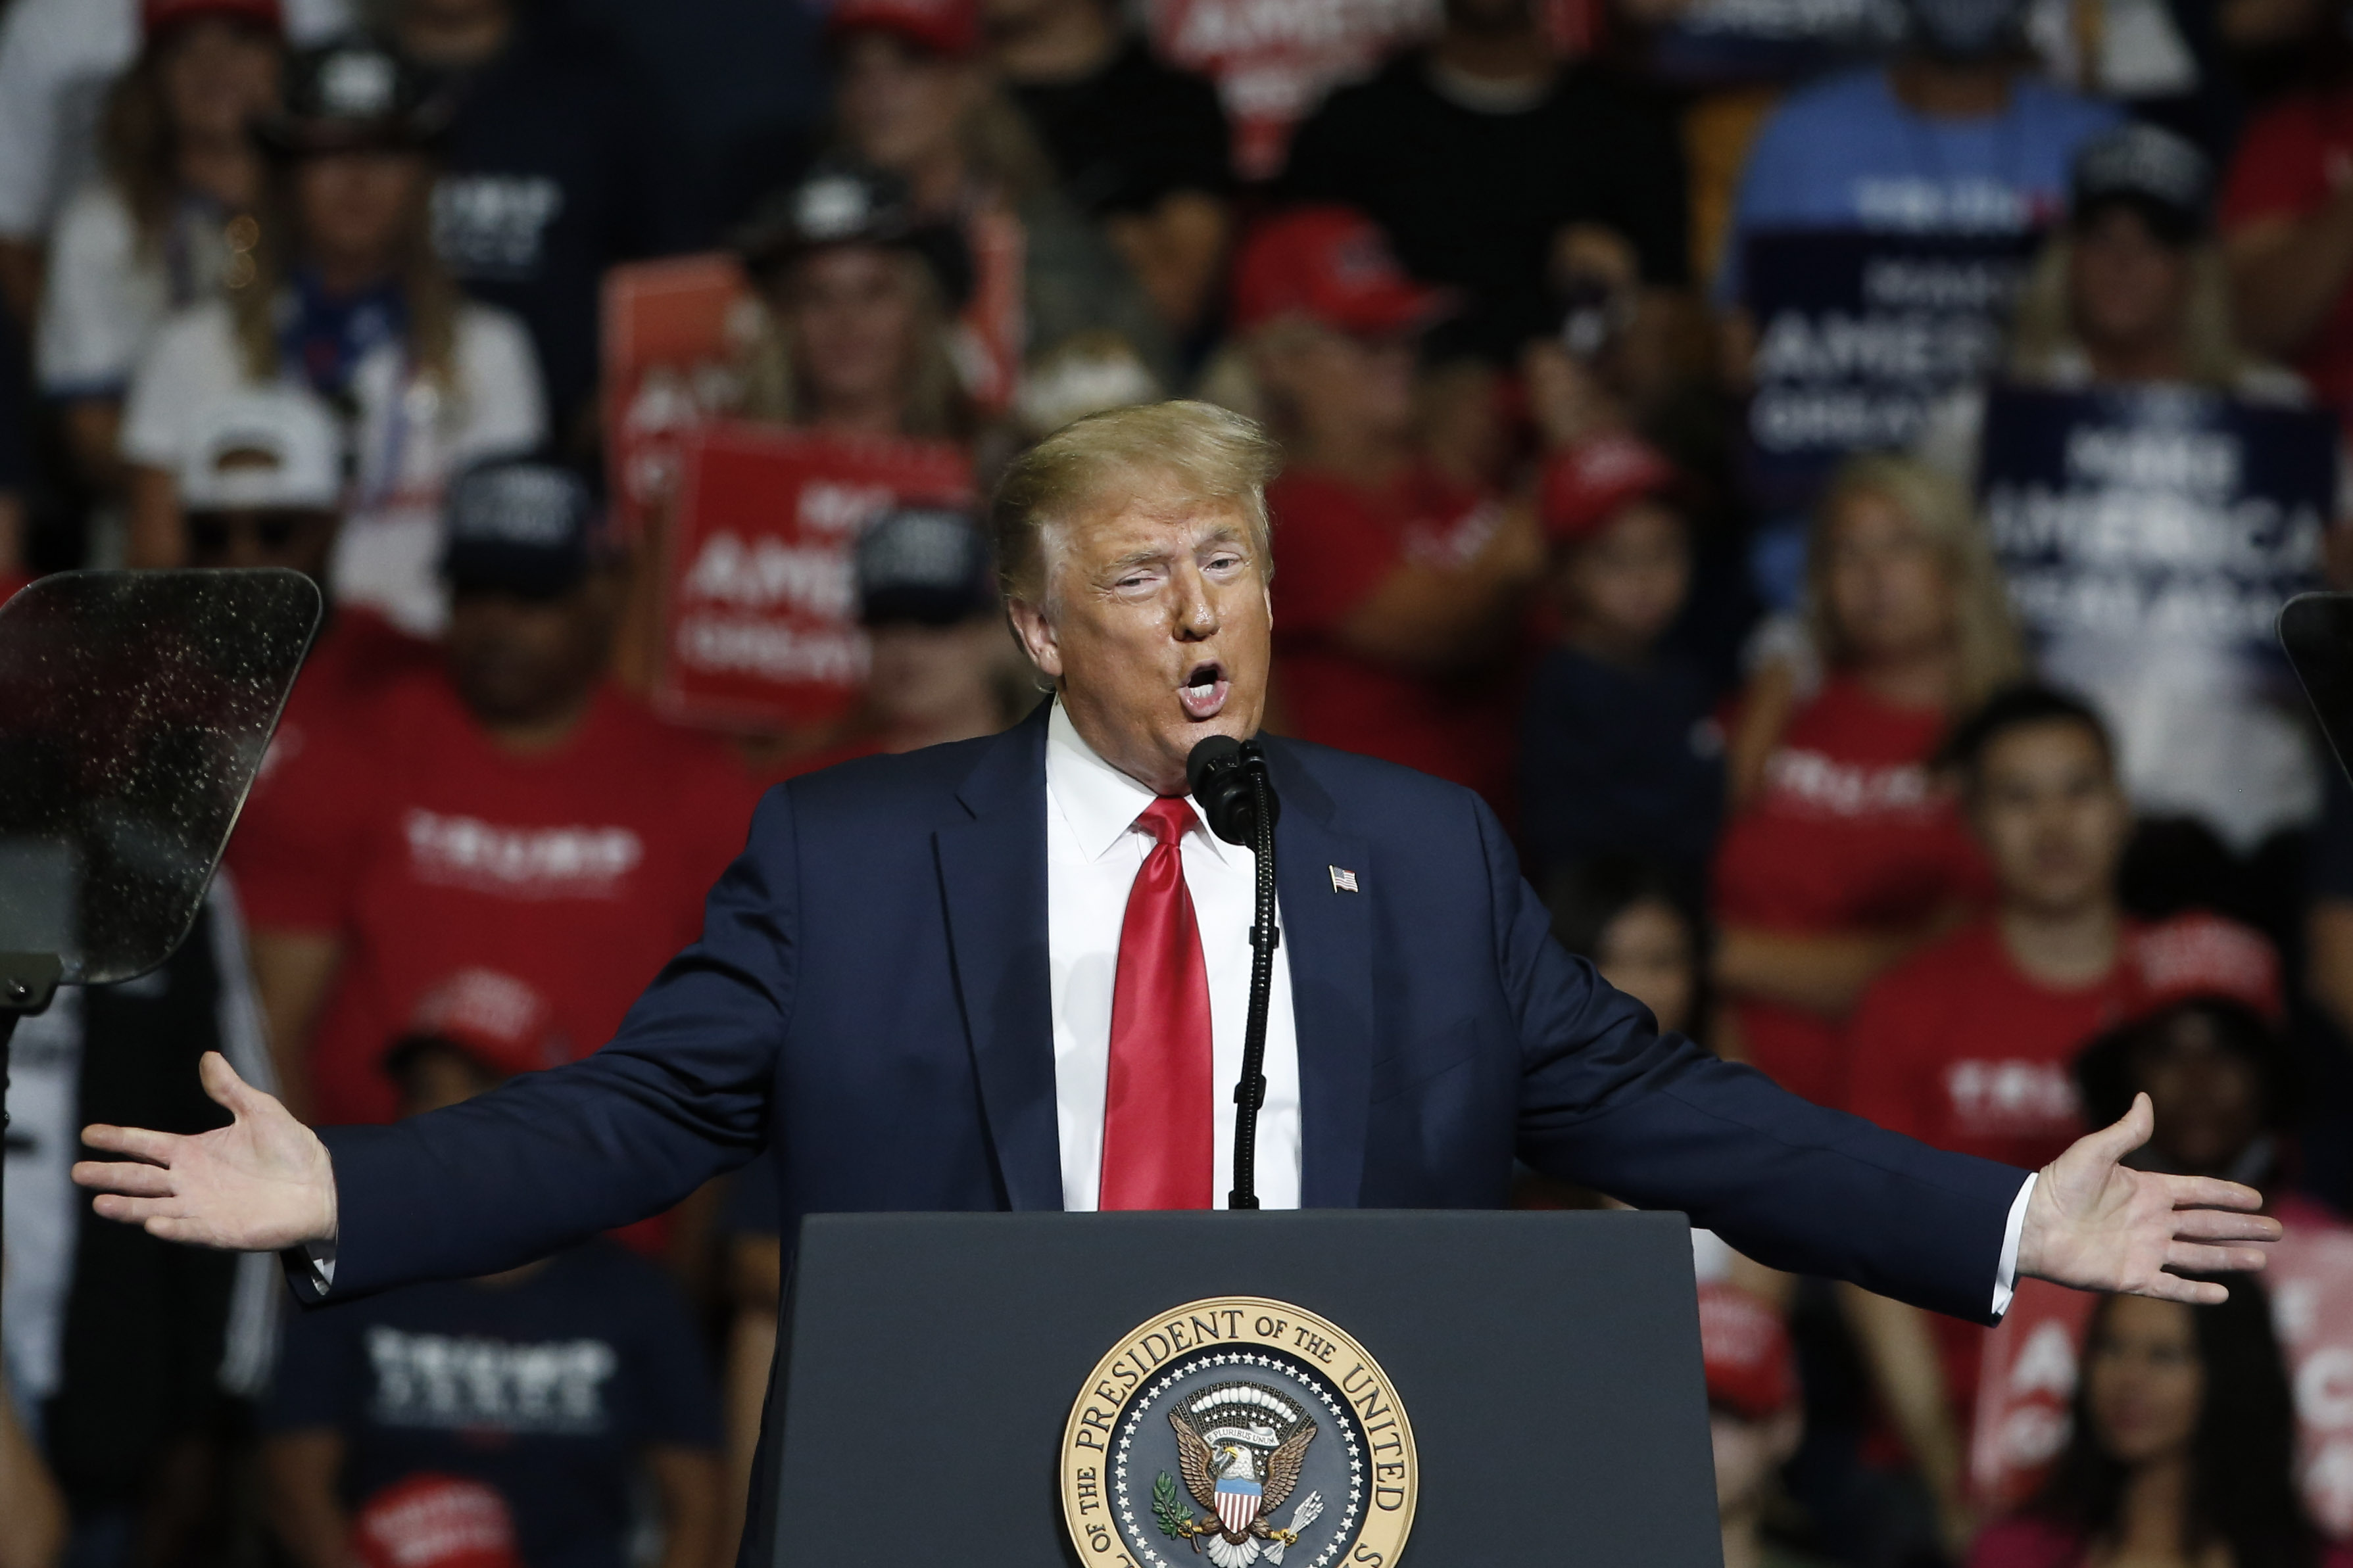 President Donald Trump speaks during a campaign rally in Tulsa, Okla. on June 20, 2020.